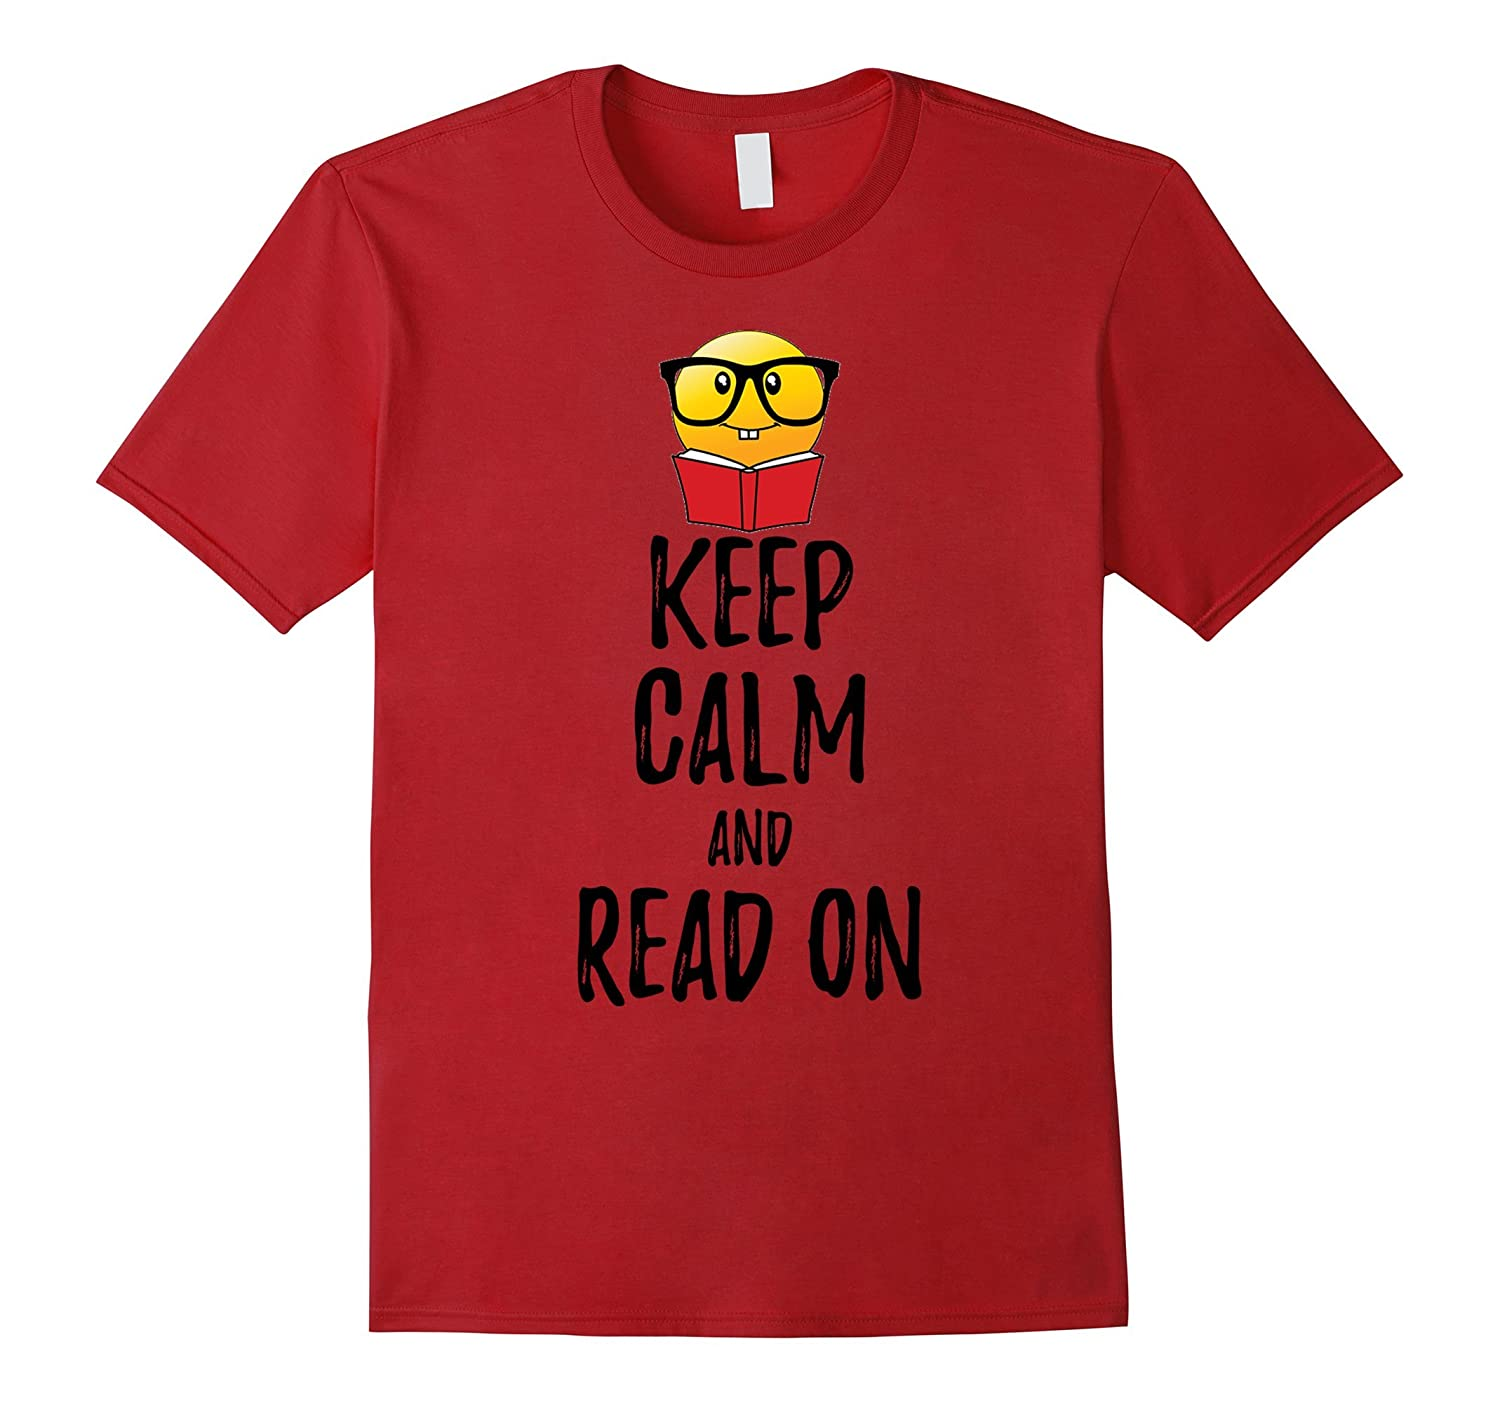 Keep Calm and Read On T-shirt for Smart Bookworm Nerds